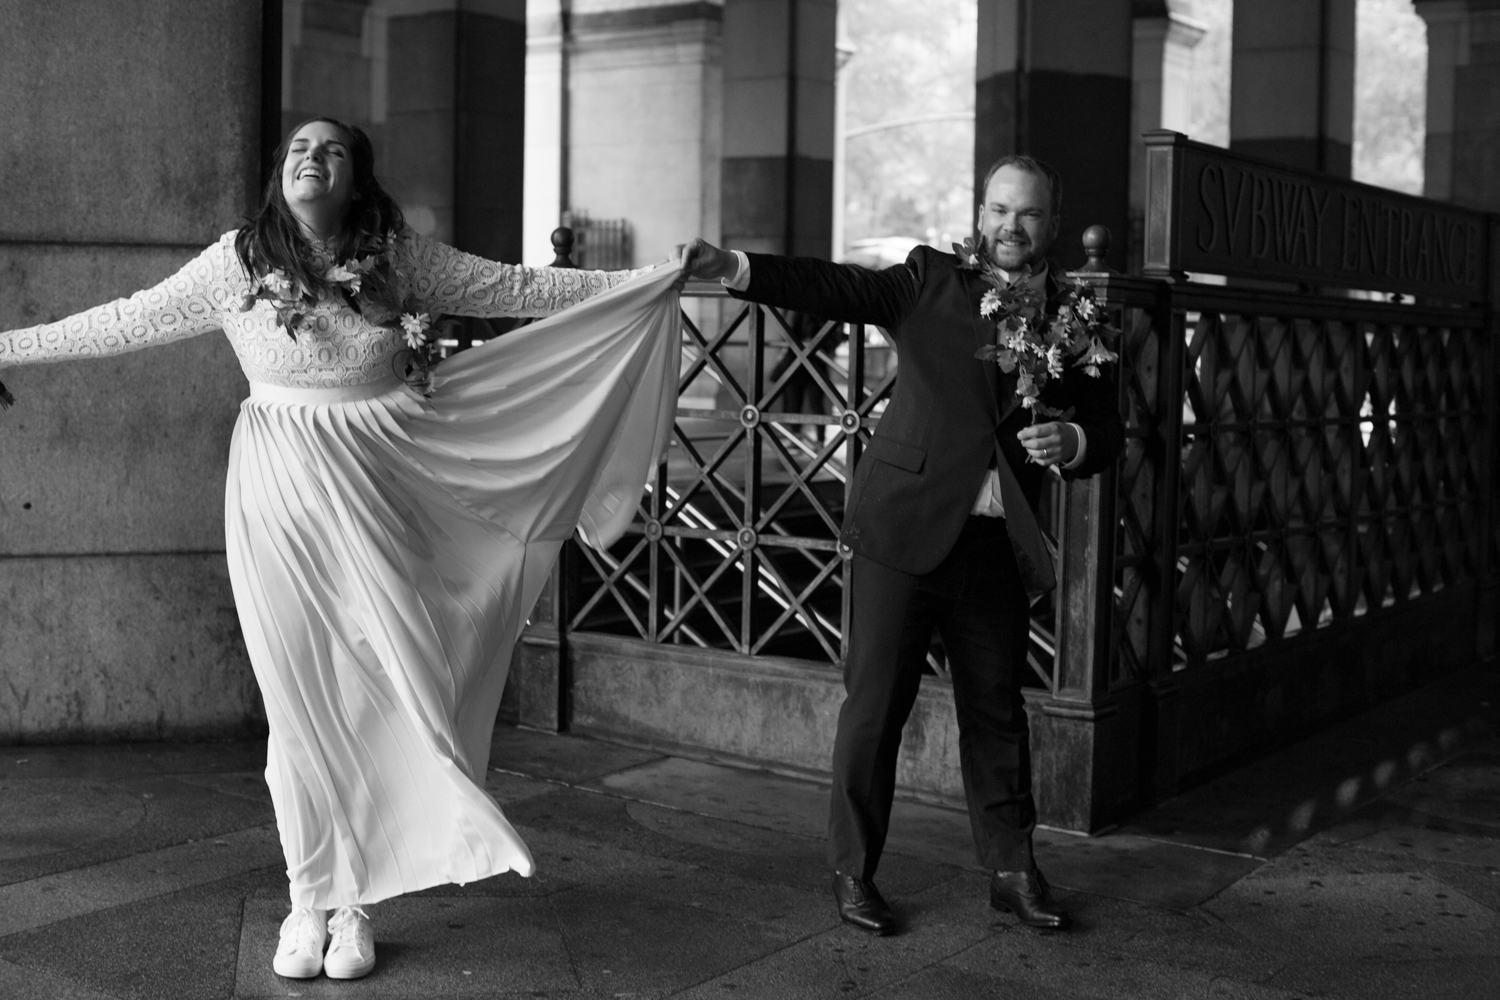 Dancing on elopement day